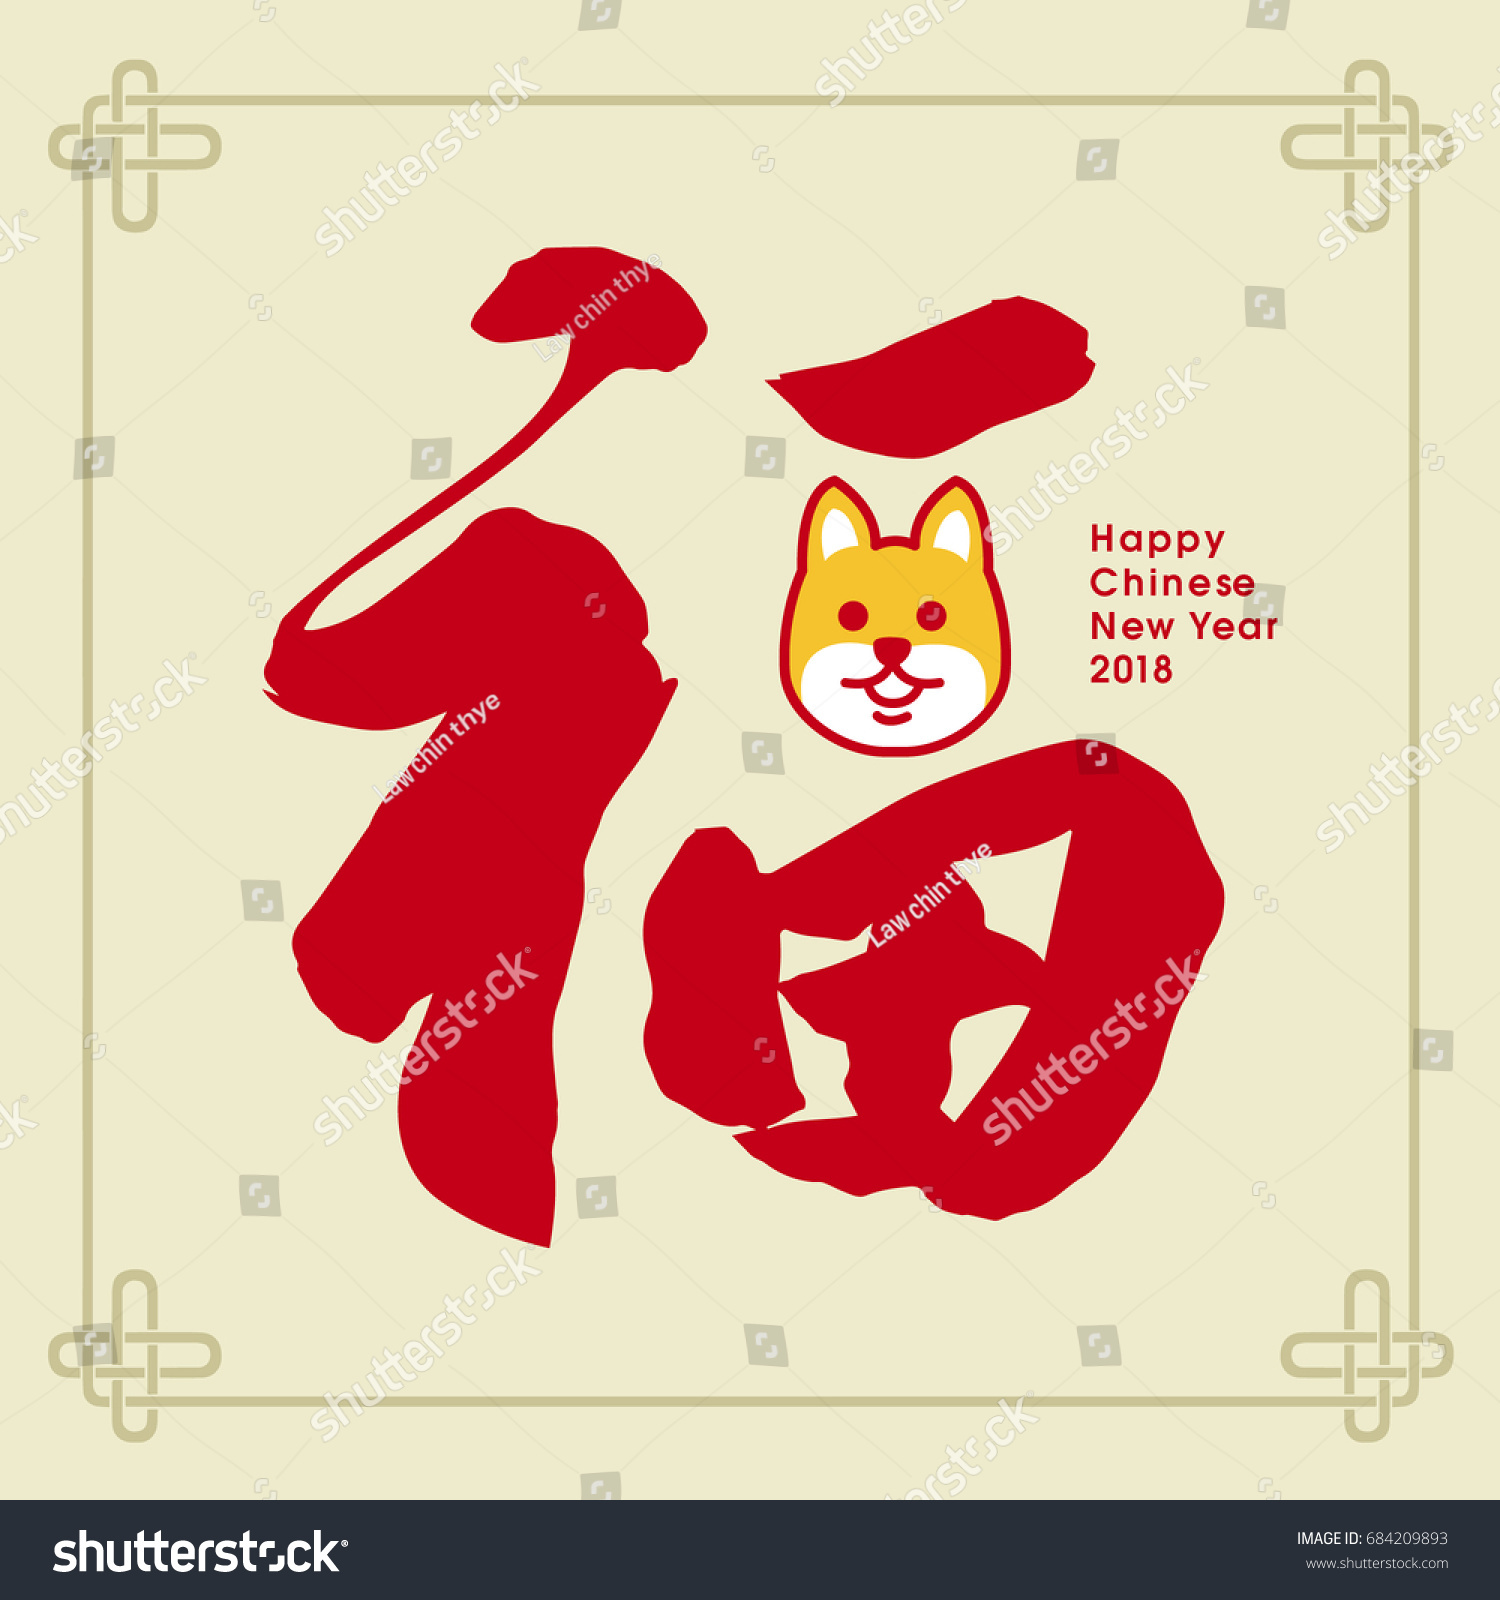 Chinese new year greetings prosperity chinese stock vector royalty chinese new year greetings prosperity chinese character m4hsunfo